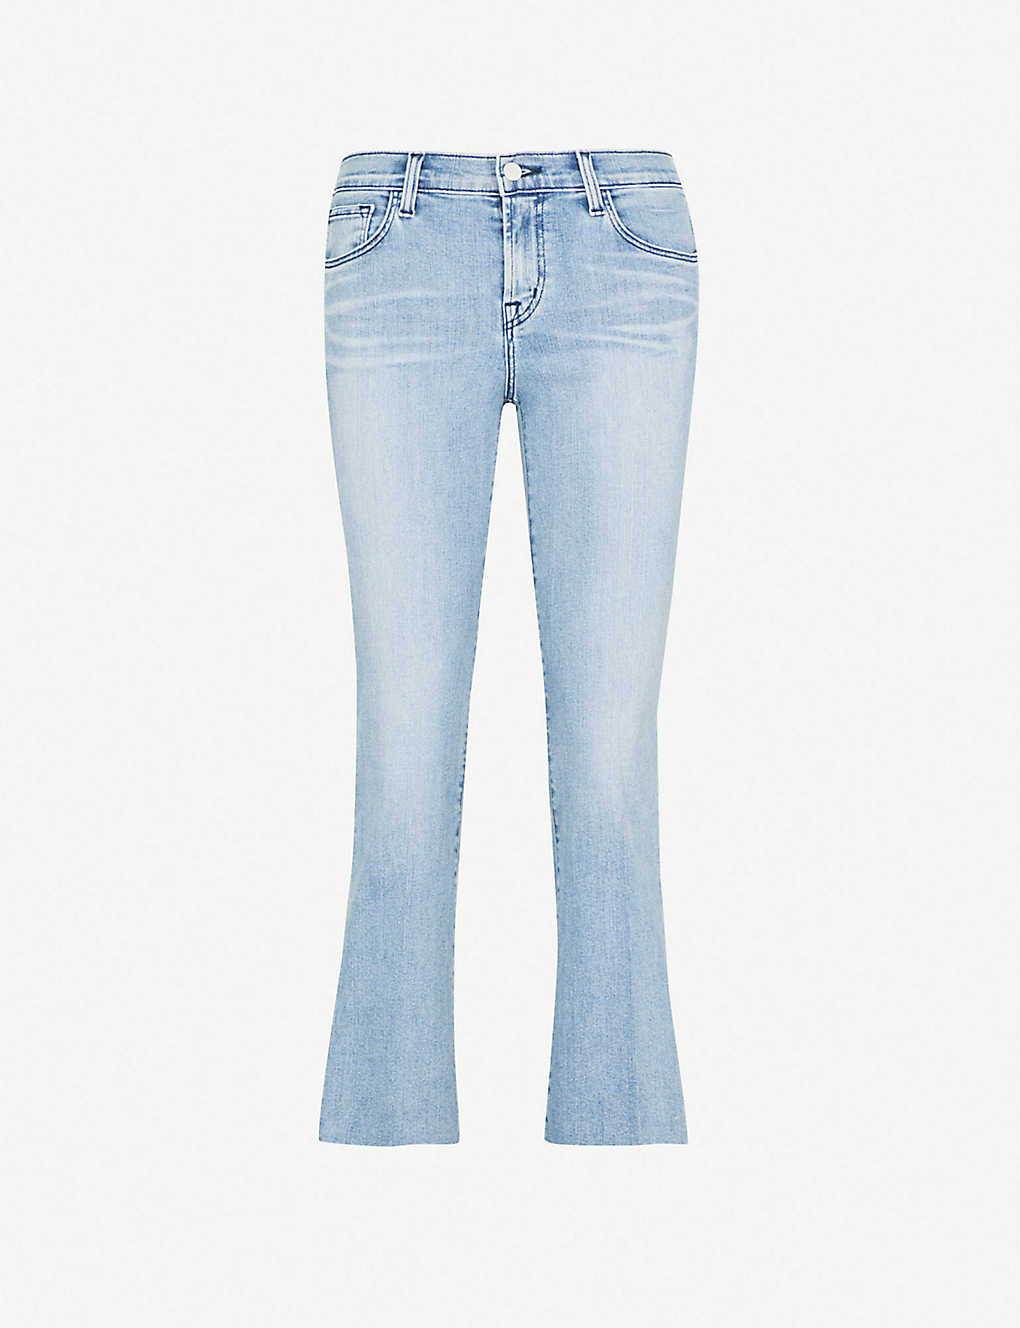 04cd1125f8639 J BRAND - Selena mid-rise cropped boot-cut jeans